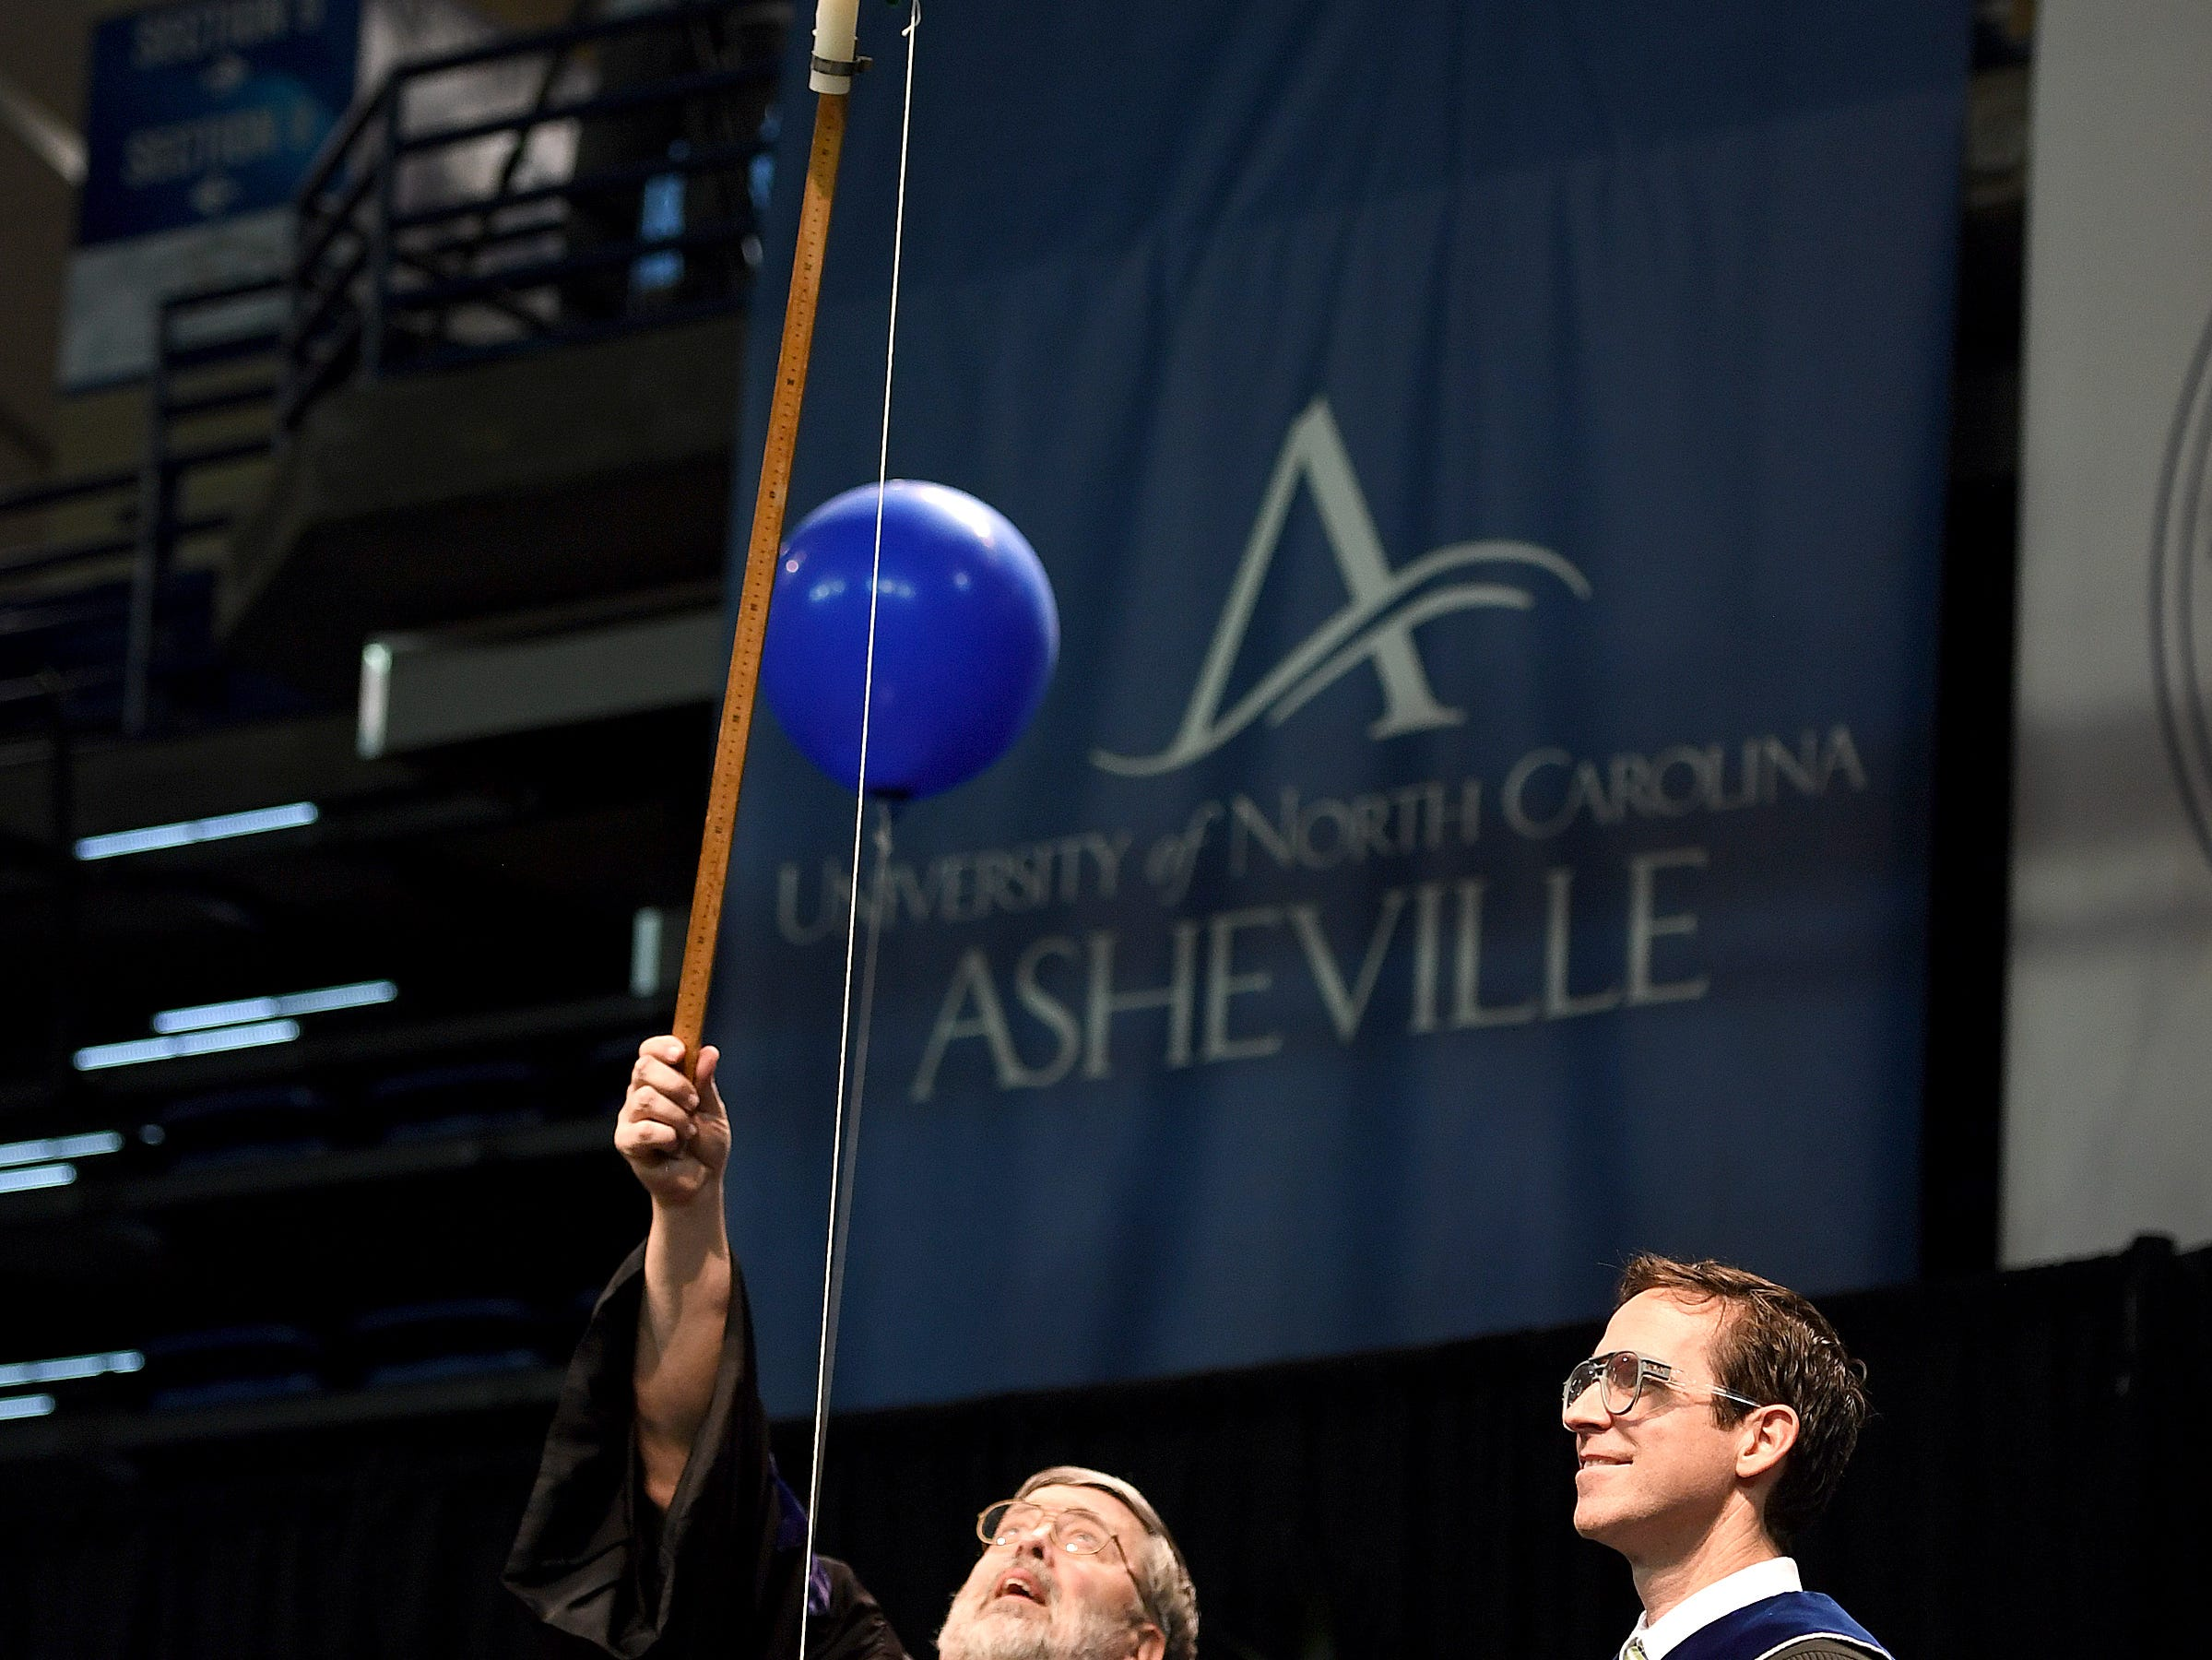 """UNC Asheville chemistry professor and keynote speaker Bert Holmes pops a balloon with a candle imparting the lesson """"don't be a dud"""" during the winter commencement ceremony at Kimmel Arena on Dec. 14, 2018. He popped three balloons, each producing a different chemical reaction and leaving a different lesson for the graduates."""